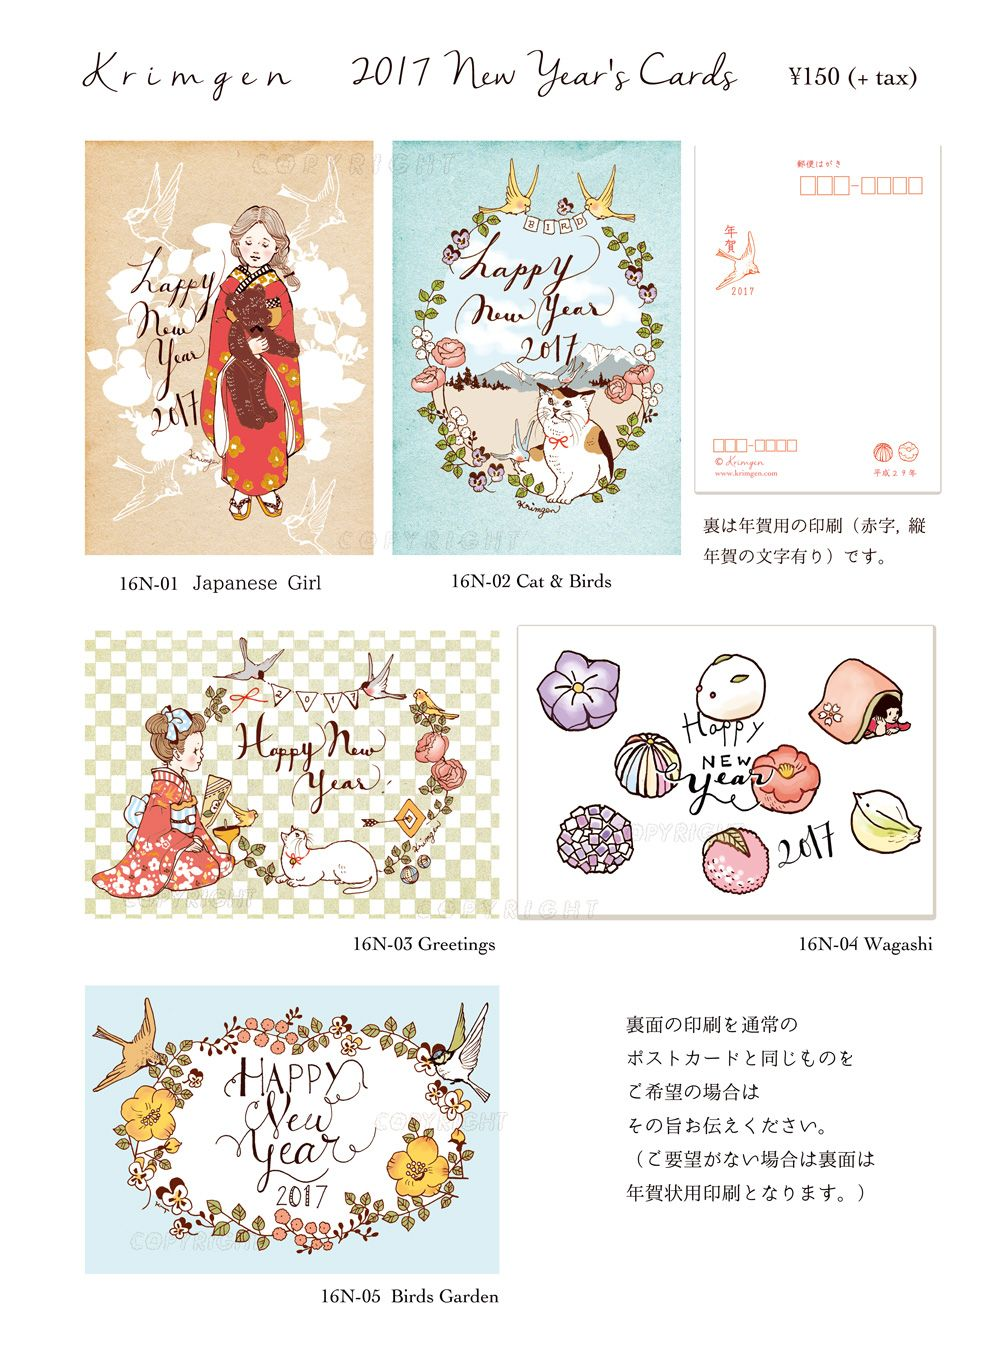 New year greetings japanese zrom happy new year comments pictures graphics for facebook myspace m4hsunfo